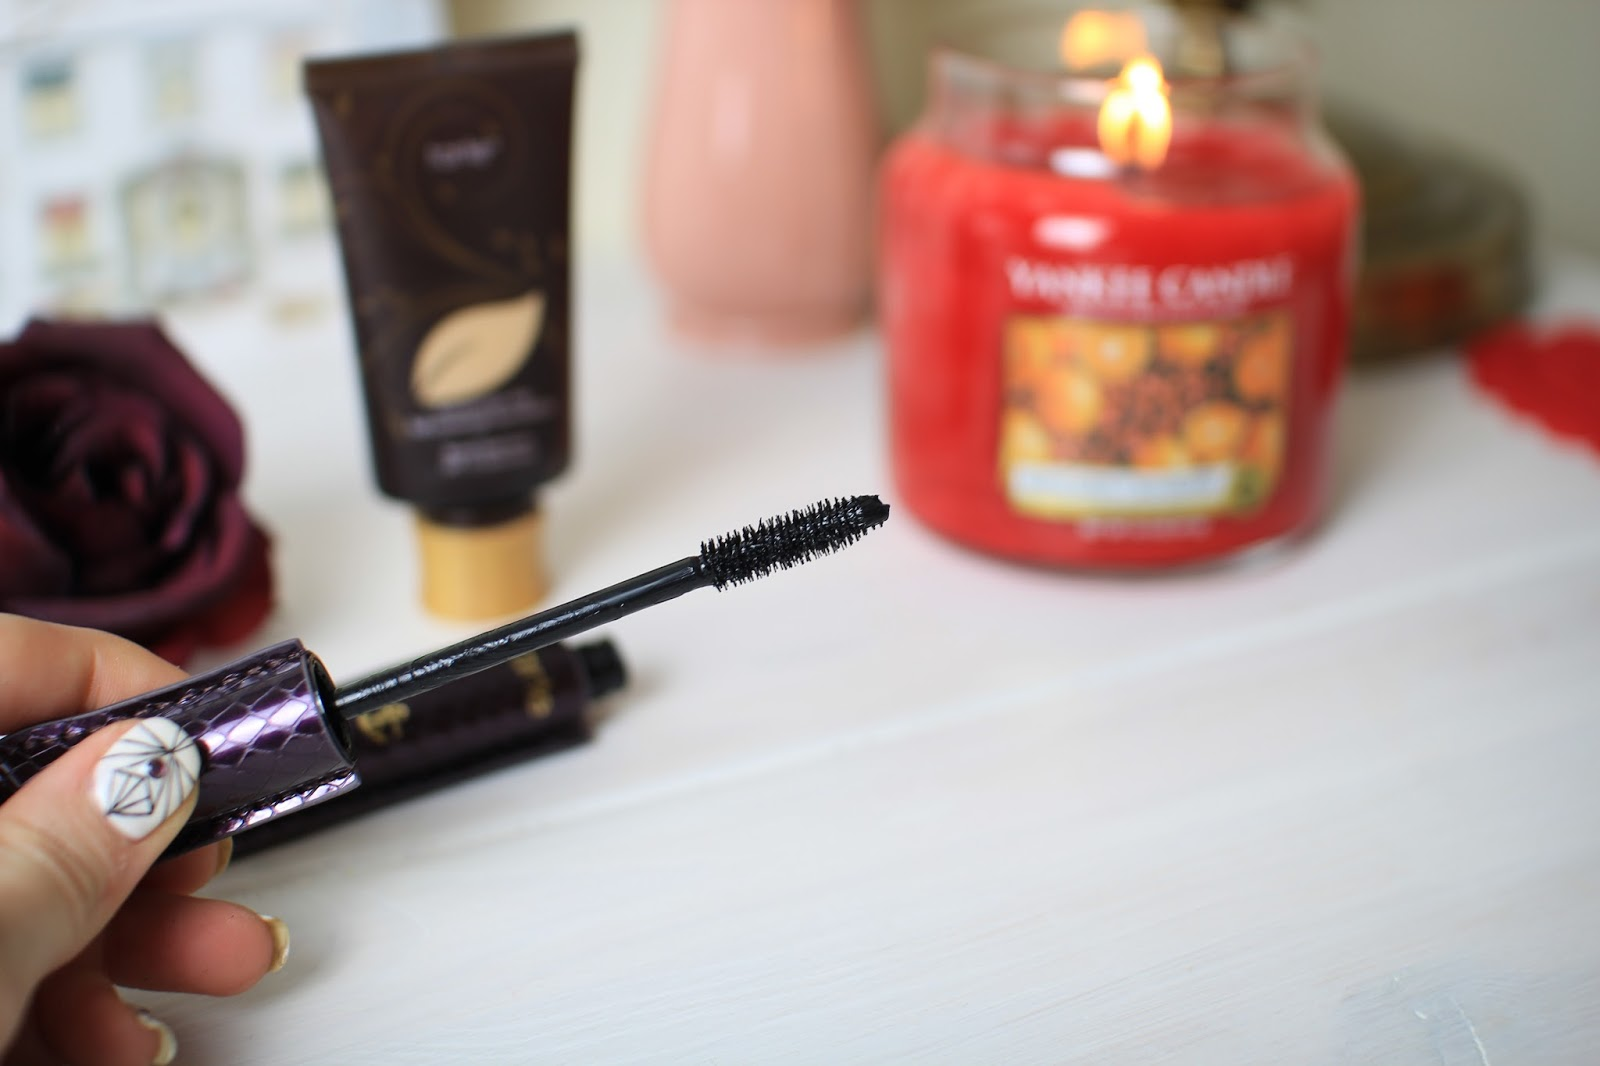 Tarte Lights Camera Splashes Mascara